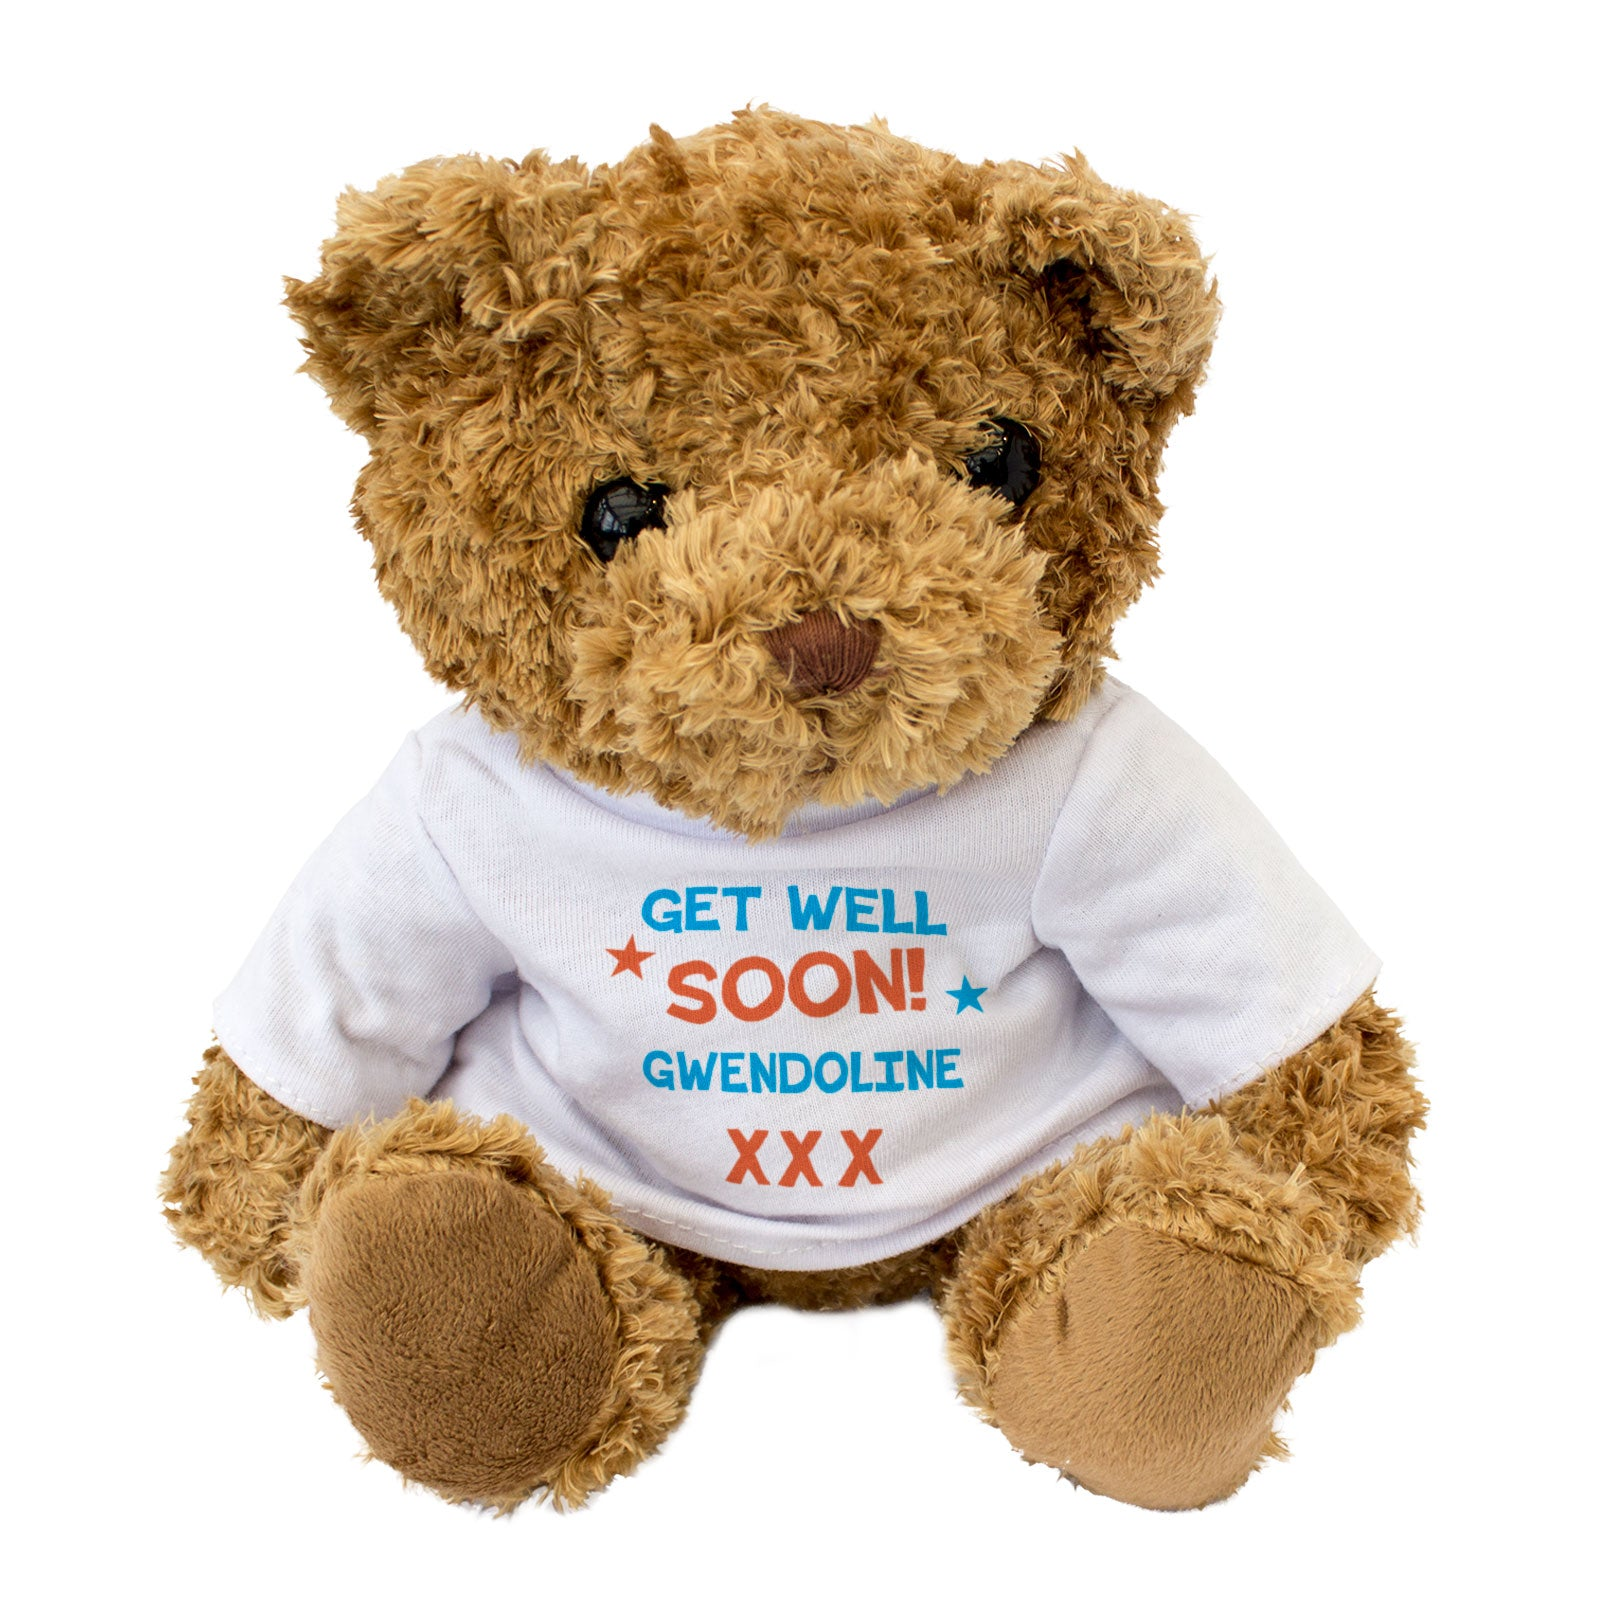 Get Well Soon Gwendoline - Teddy Bear